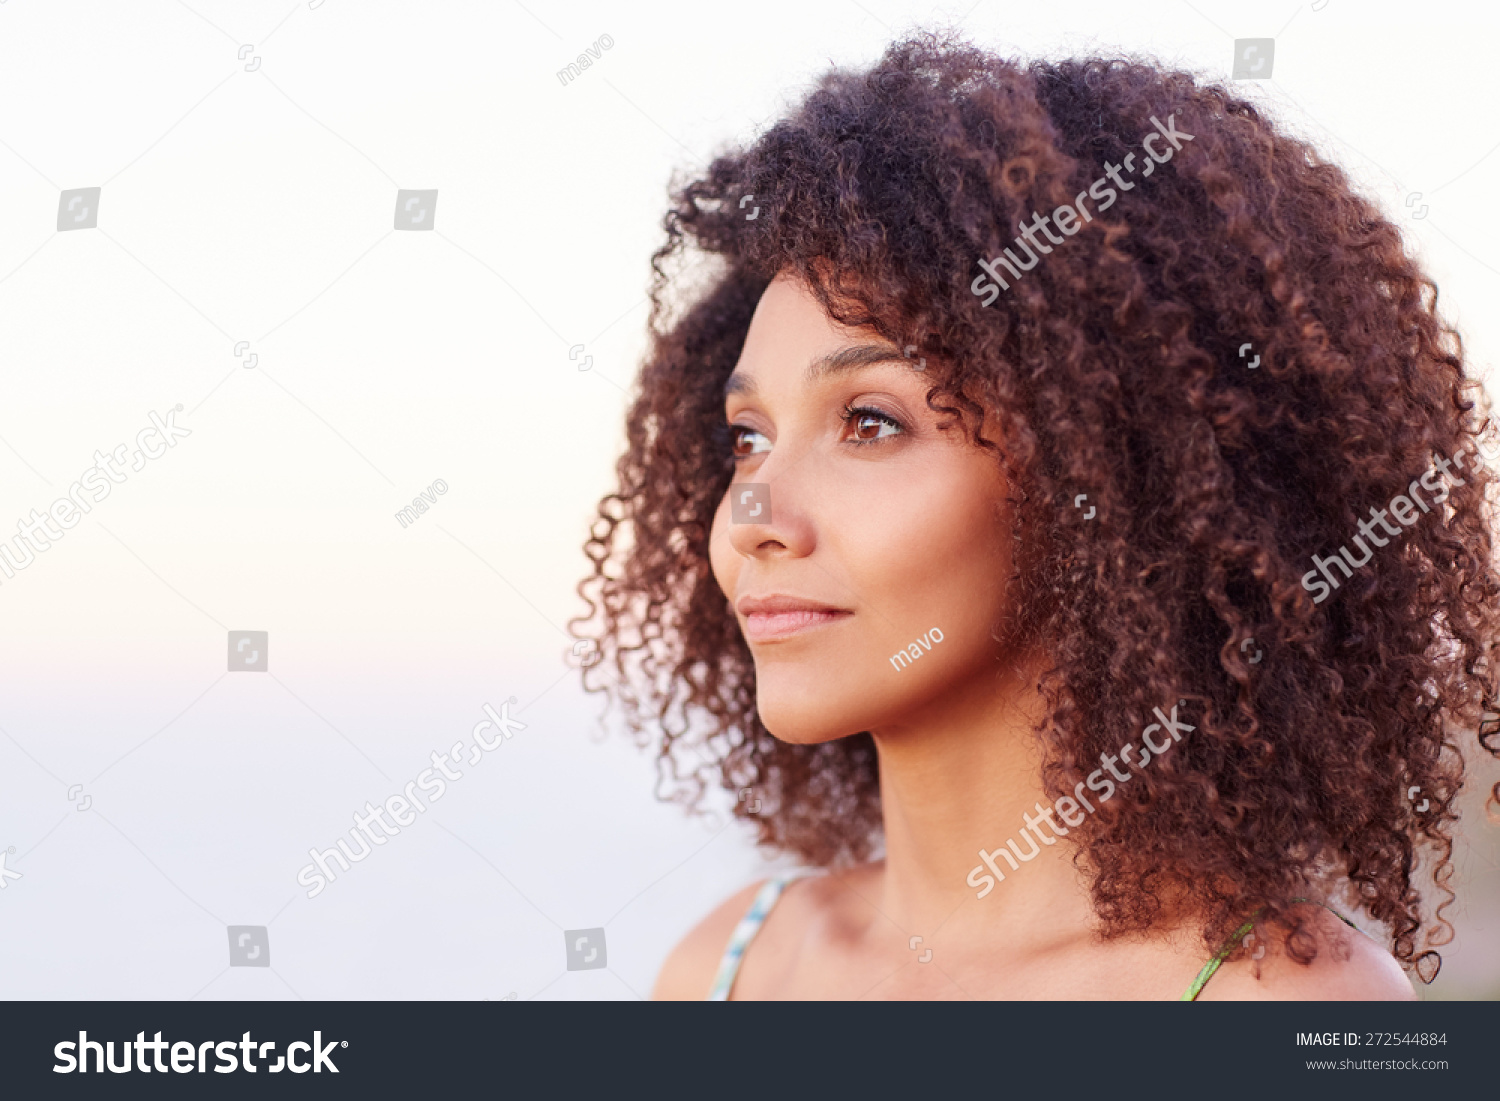 Fabulous Beautiful Mixed Race Woman With Curly Afro Hair Looking Serenely Hairstyles For Men Maxibearus